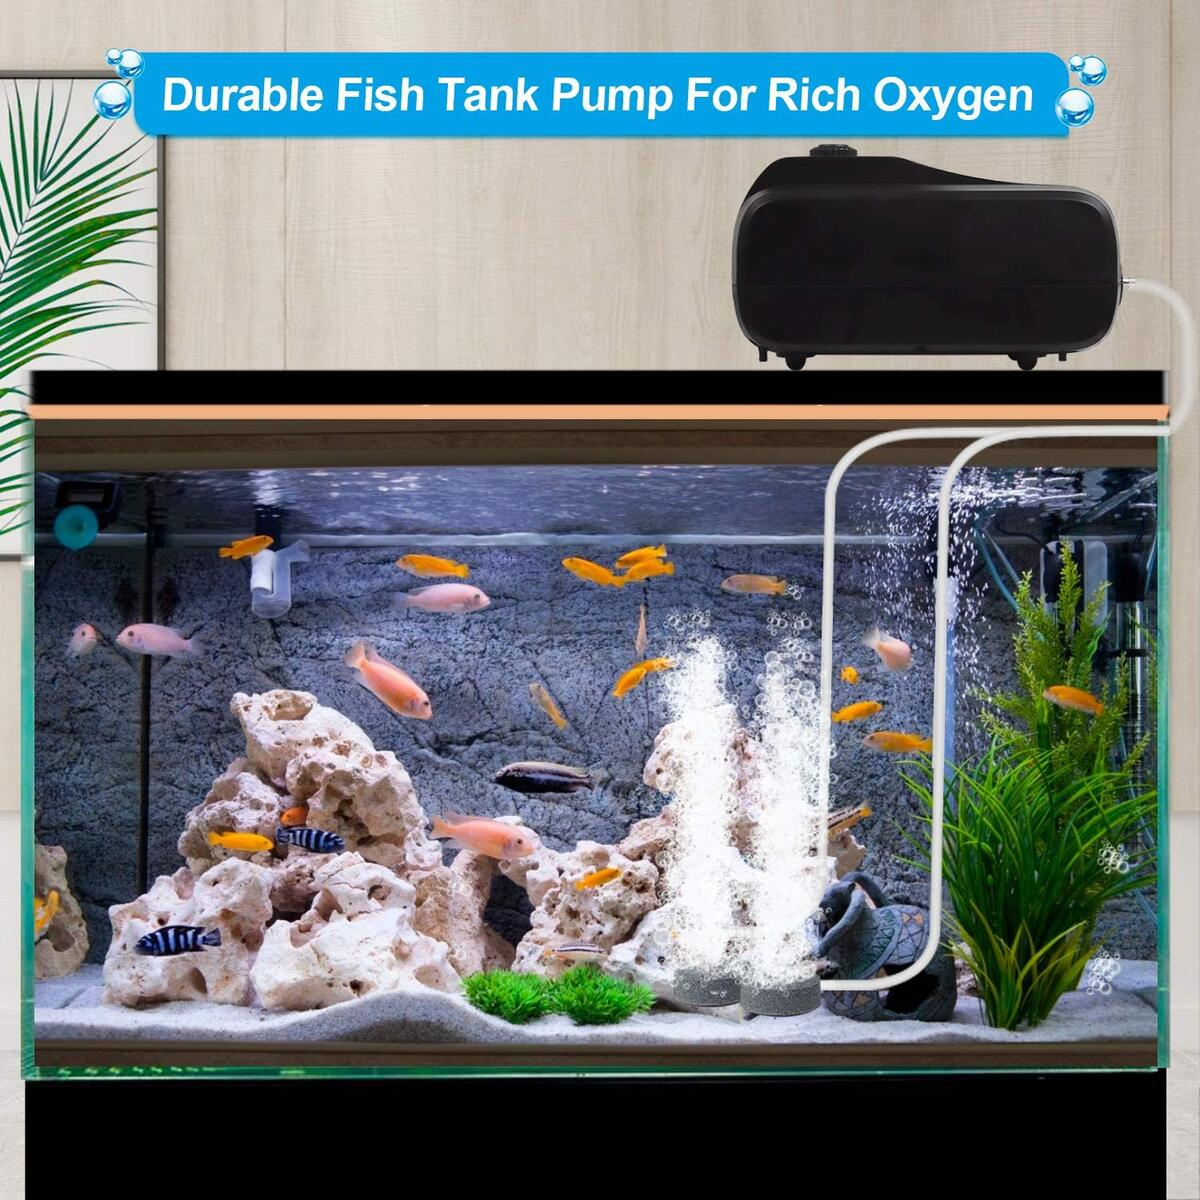 HIRALIY Aquarium Air Pump Powerful 5 W 2 Outlets Adjustable Silent Fish Tank Bubbler Oxygen Pump Aerator for Aquarium Pond Up to 500 Gallon with Air Stones Silicone Tube Check Valves